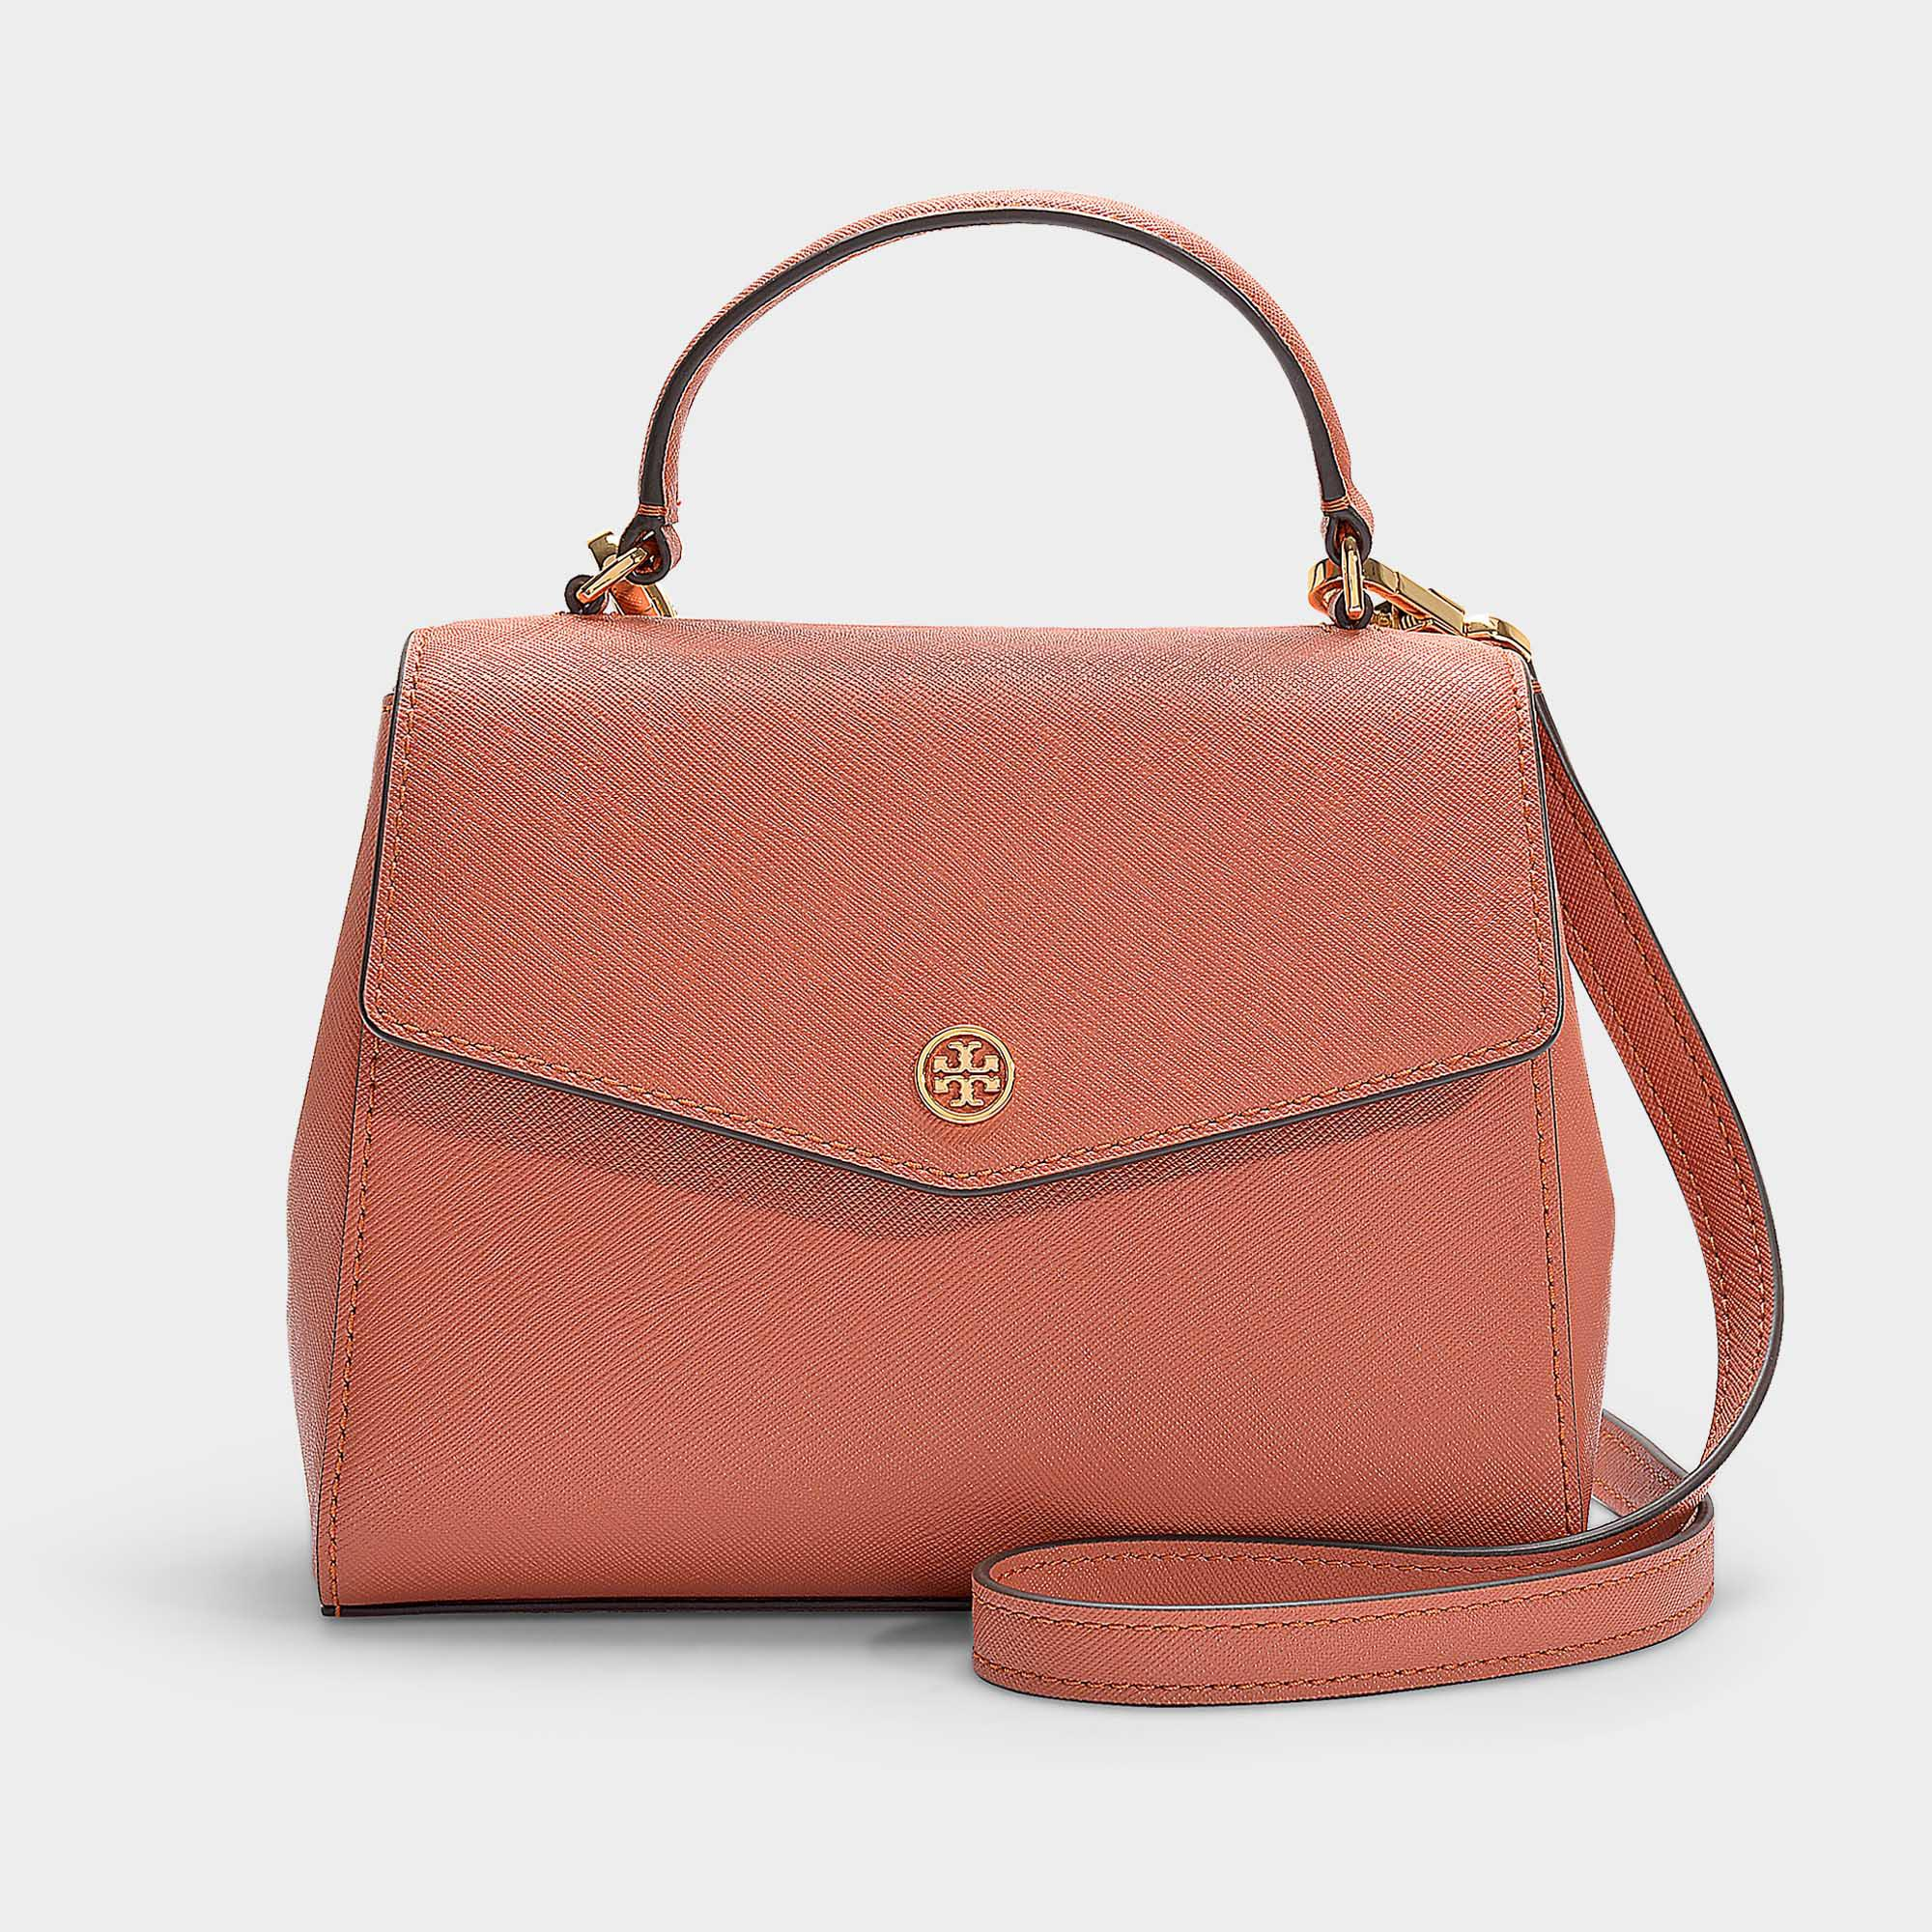 6efb717f2901 Tory Burch Robinson Small Top-handle Satchel In Tramonto Calfskin in ...